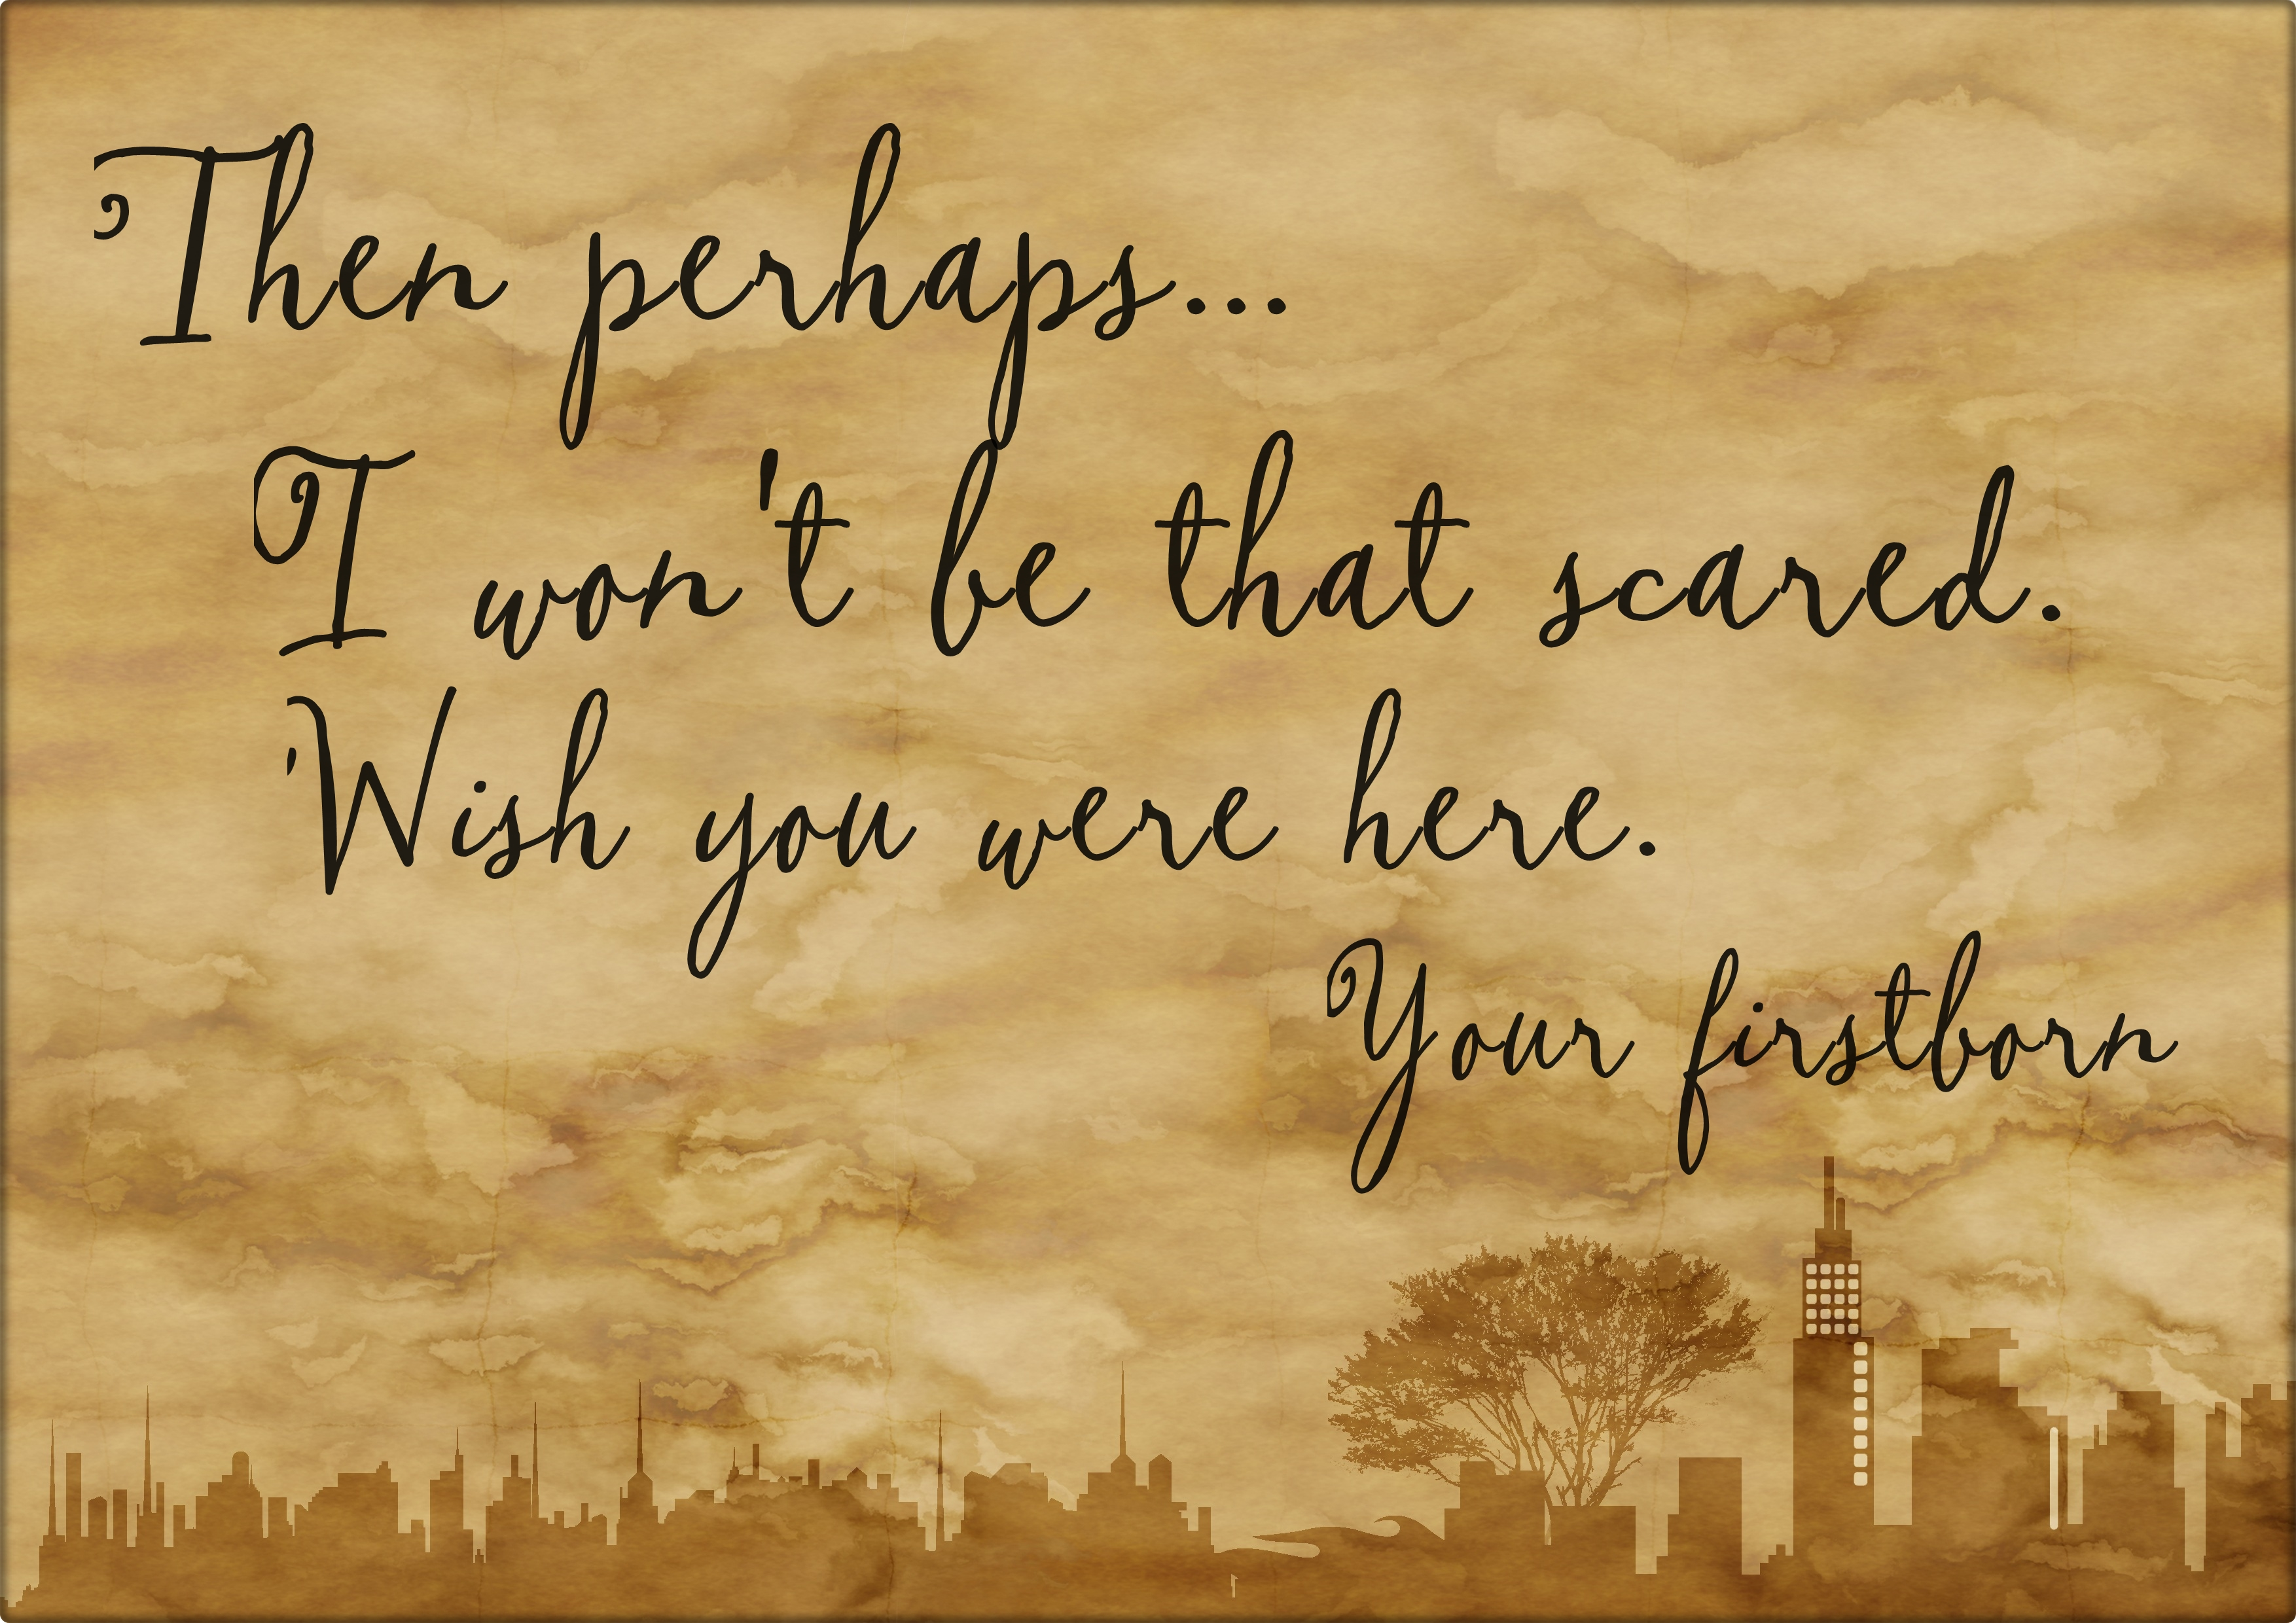 Then perhaps I won't be that scared - Wish you were here - your firstborn - readingruffolos